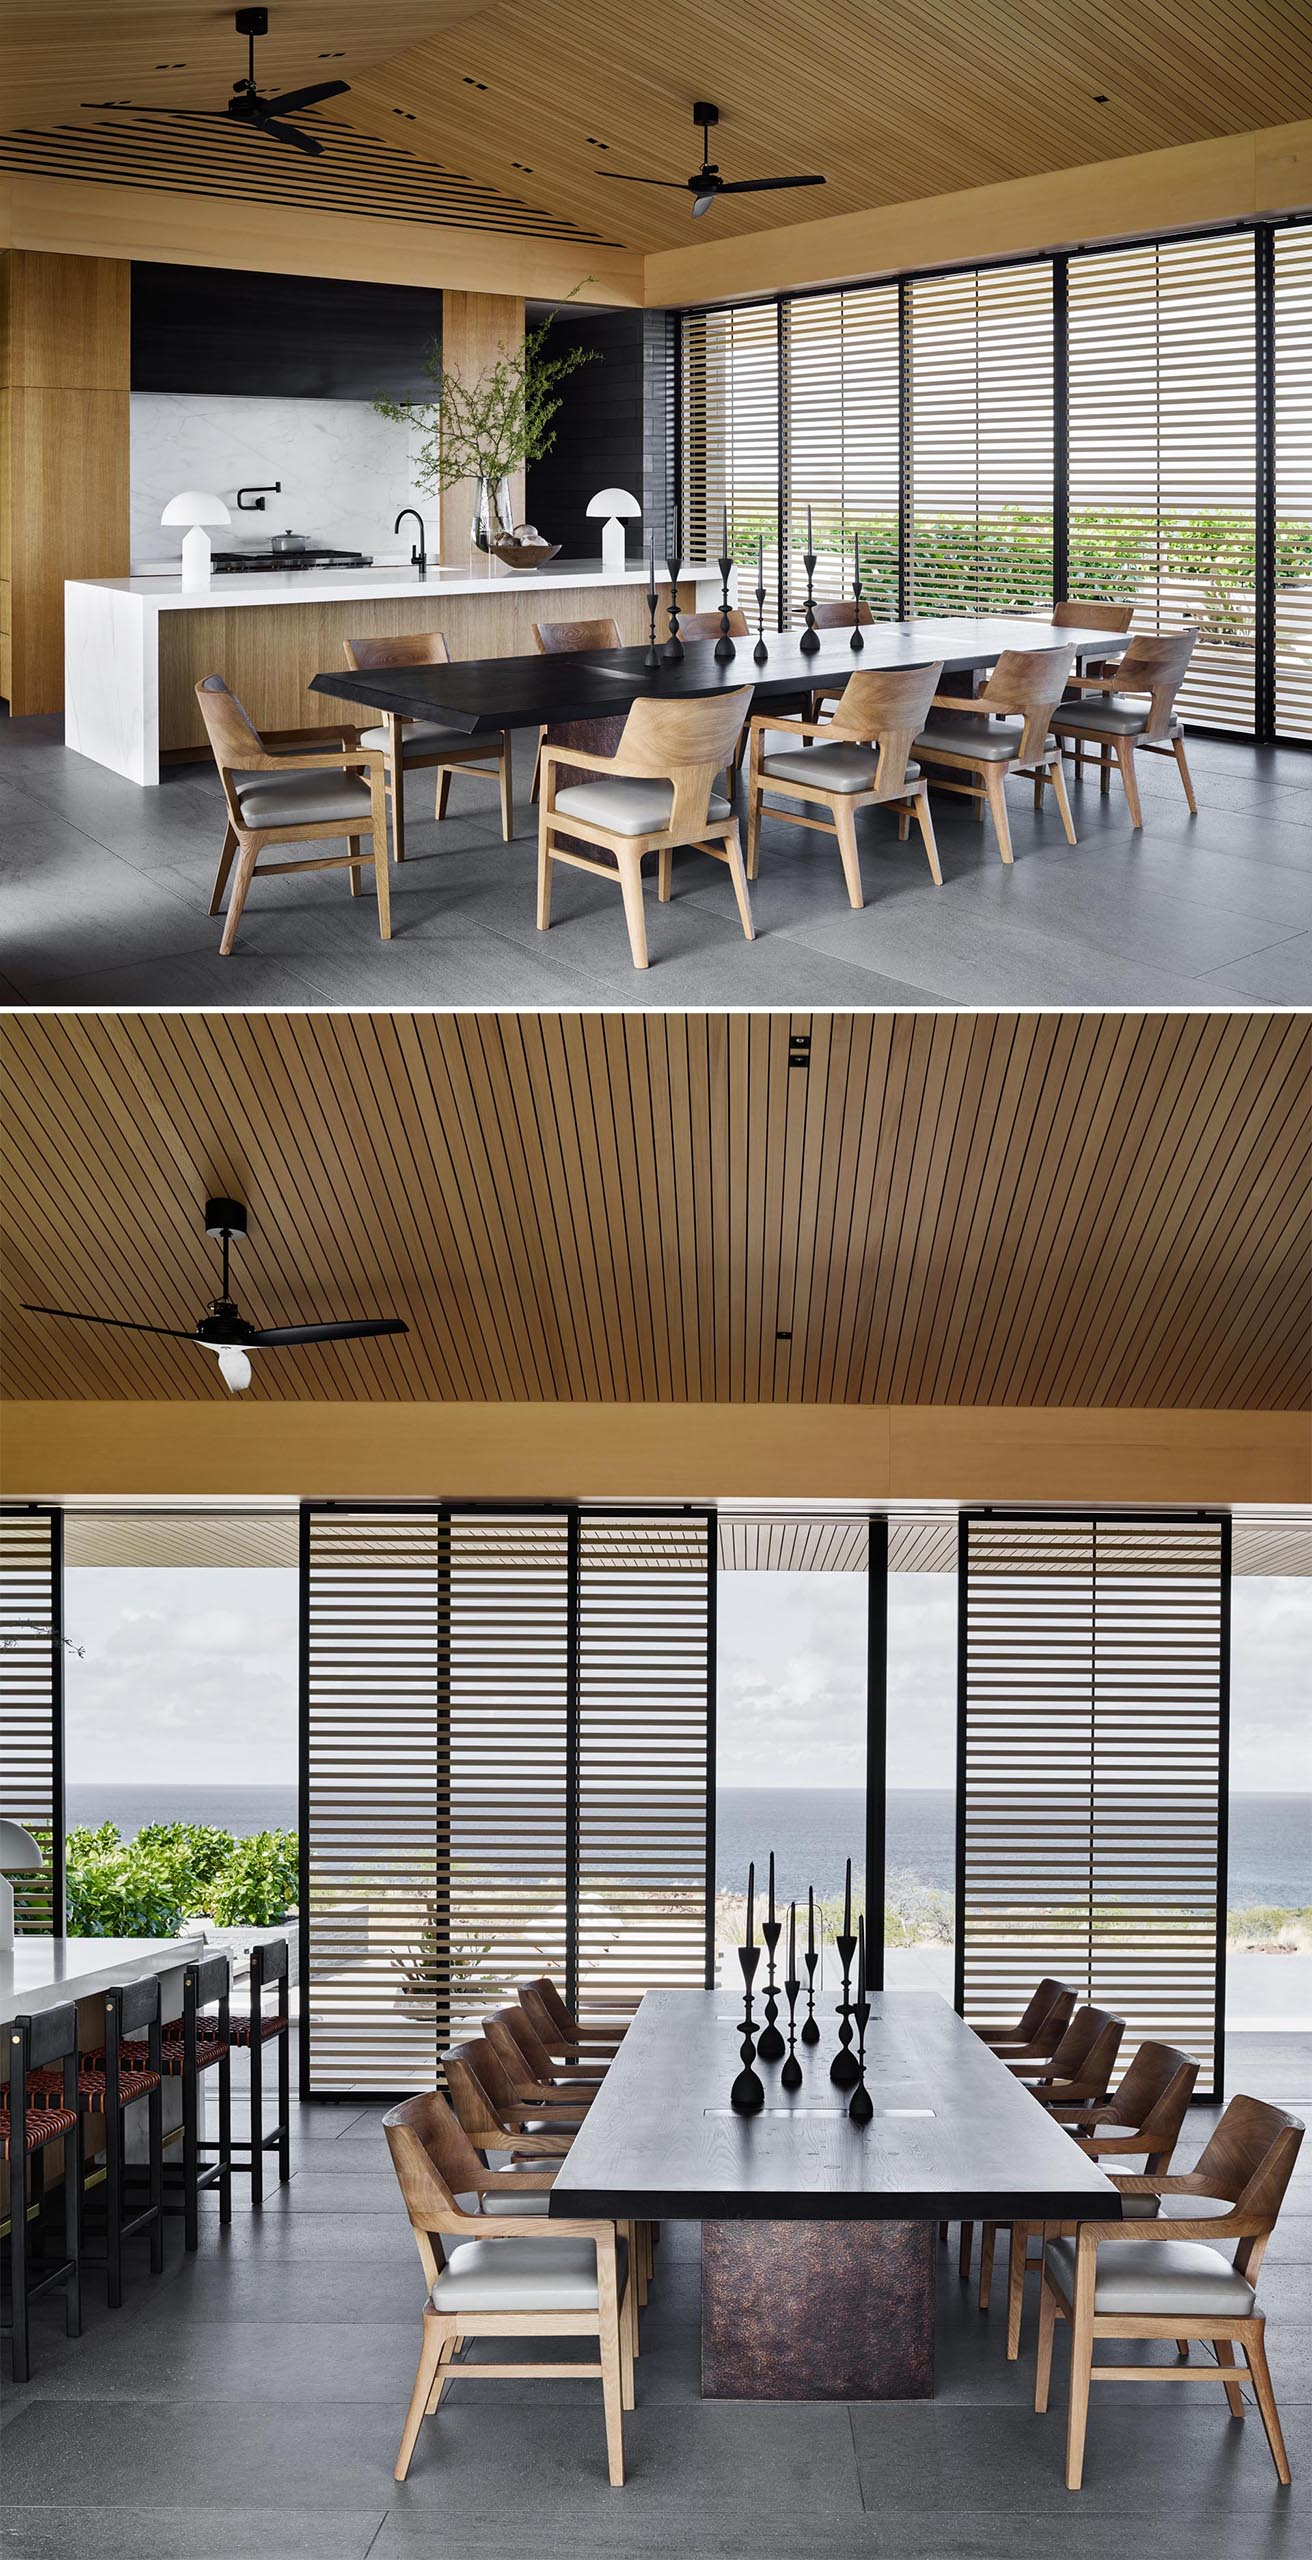 This modern open plan dining room includes a large dark table that's surrounded by eight lighter wood chairs.